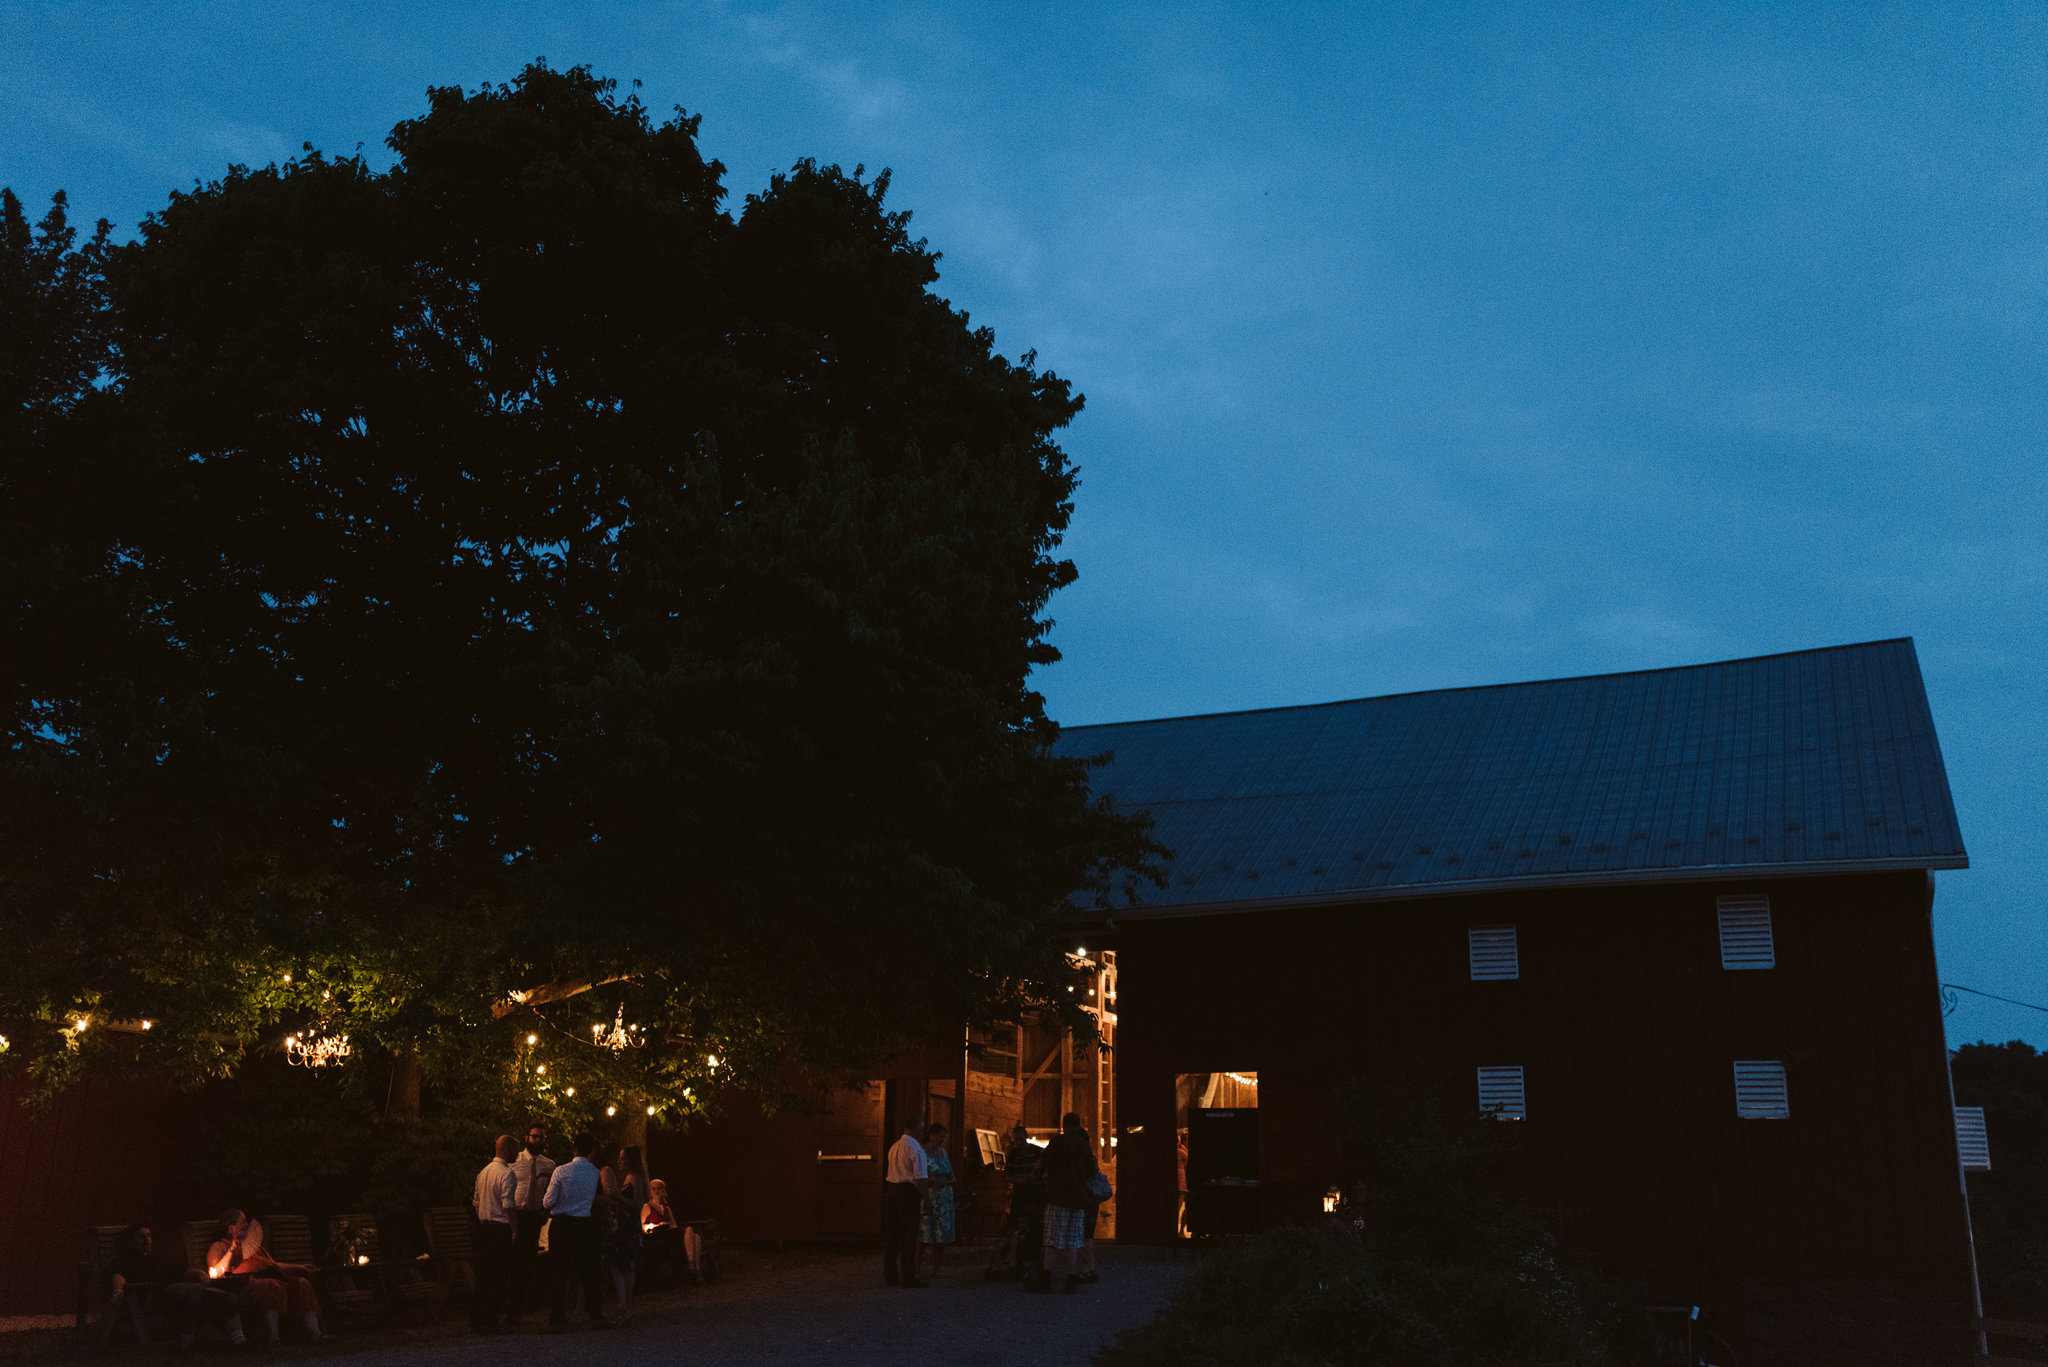 Rocklands Farm, Maryland, Intimate Wedding, Baltimore Wedding Photographer, Sungold Flower Co, Rustic, Romantic, Barn Wedding, Twilight Photo of Illuminated Barn